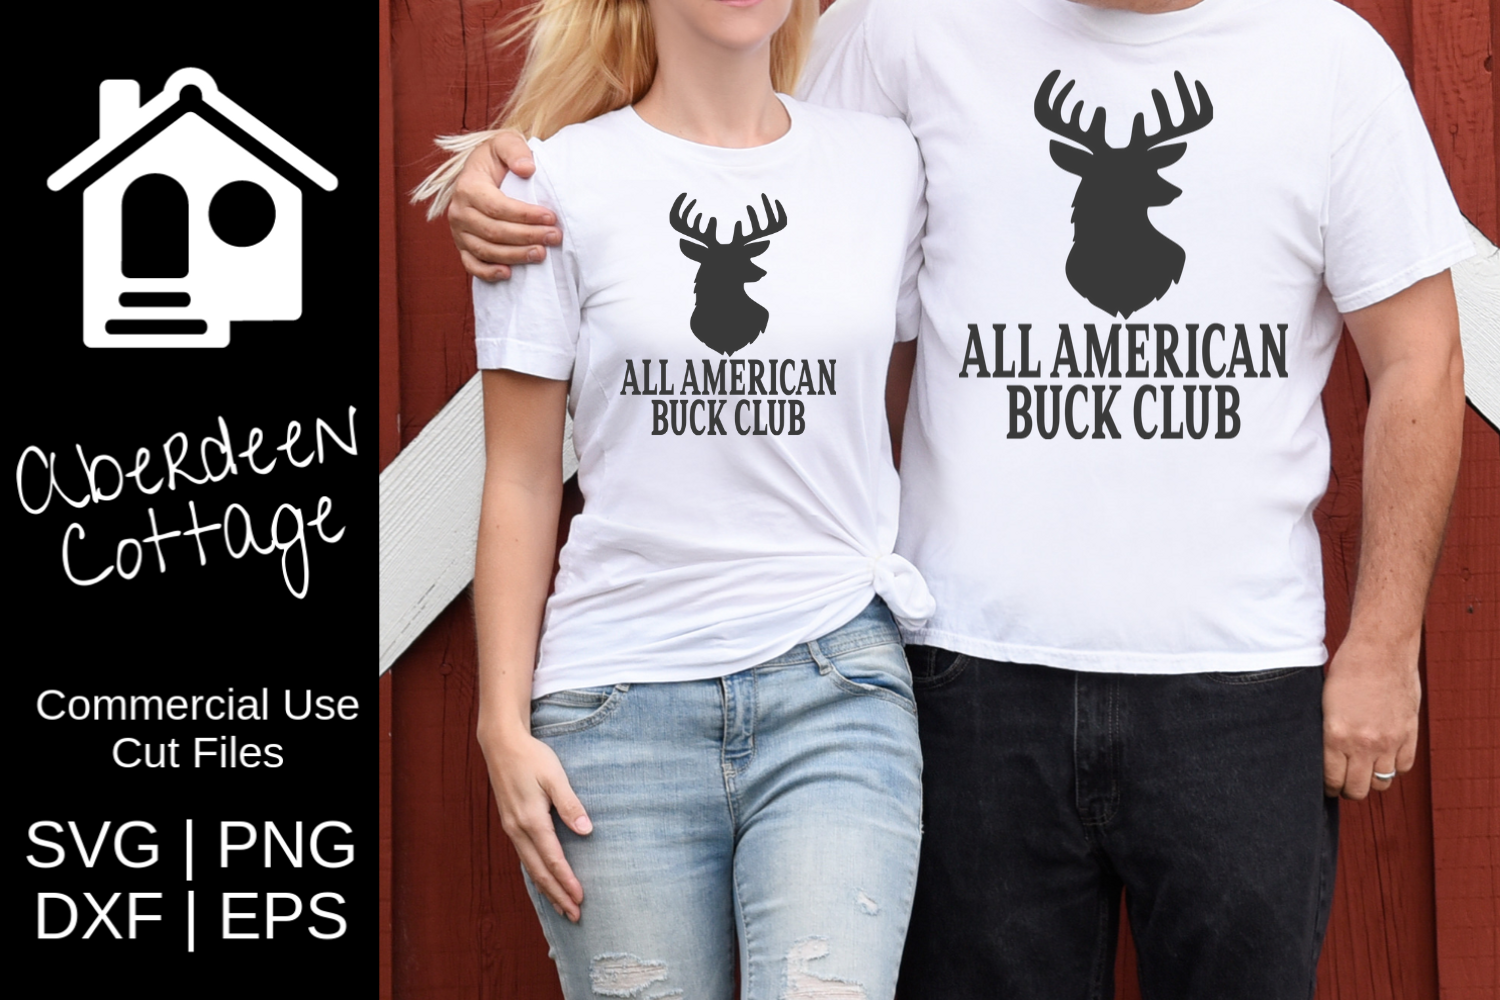 All American Buck Club 3 SVG example image 1